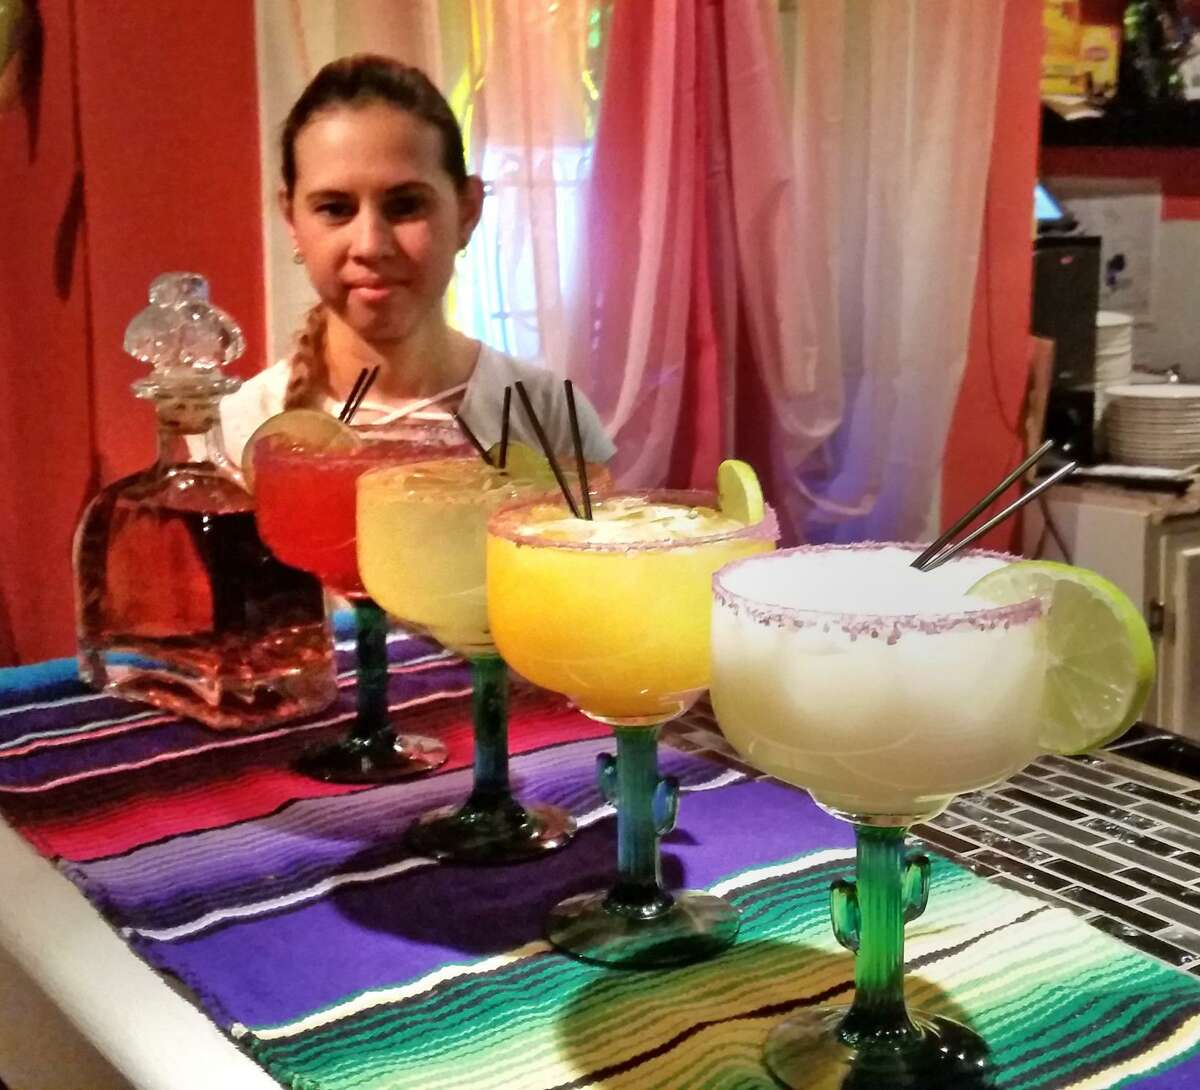 Server Reina Galicia, pictured with margaritas whose flavors range from traditional, mango, coconut and strawberry at Picante's.